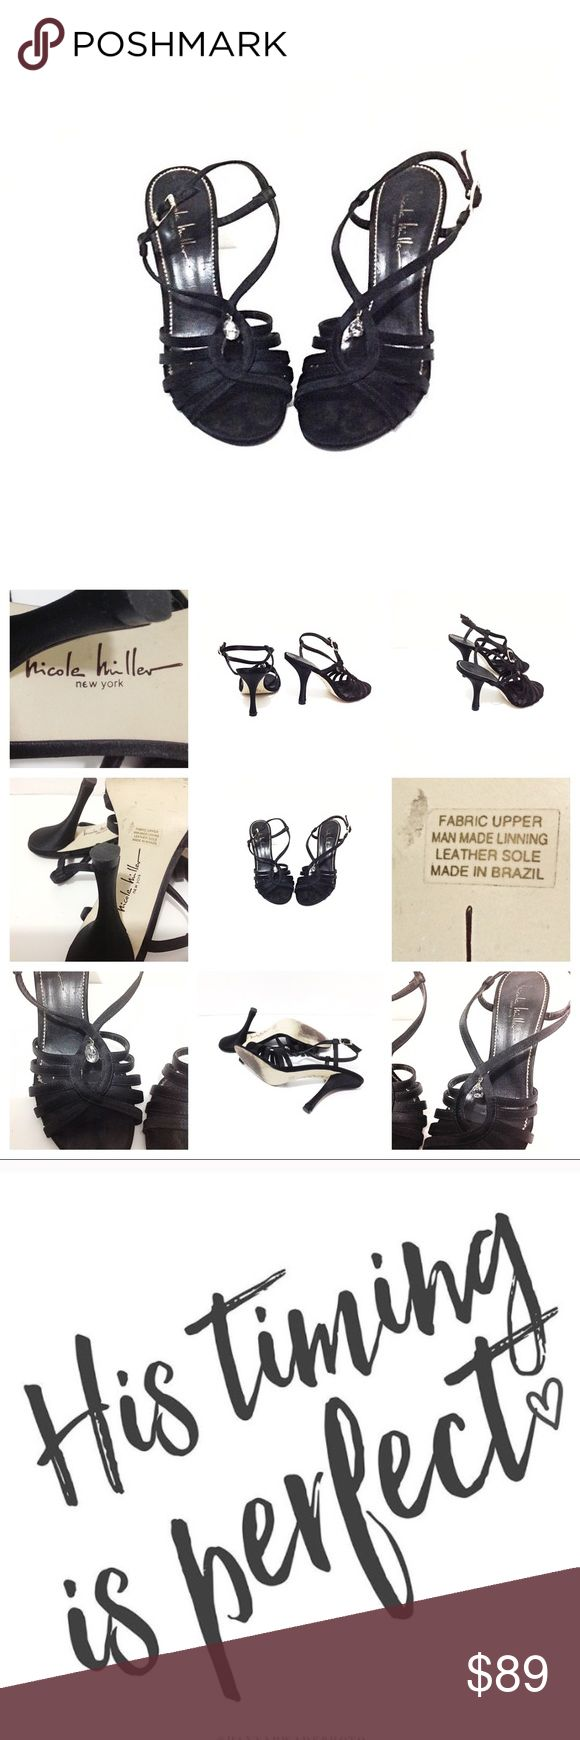 Nicole Miller Evening/ Party Black & Jewel Sandals Feminine Nicole Miller New York black strappy sandals with a tear drop jewel. Satin upper & leather soles. T crossed straps open toes, and ankles buckle strap. Very classy chic and fashion forward for the holidays • perfect for office parties, evening formal dates & black tie dressy events, weddings, pageants, bridesmaids, pinup theme • these are gently use •  marked size 36 B • smoke & cat free home • God bless & happy Poshing! Nicole…